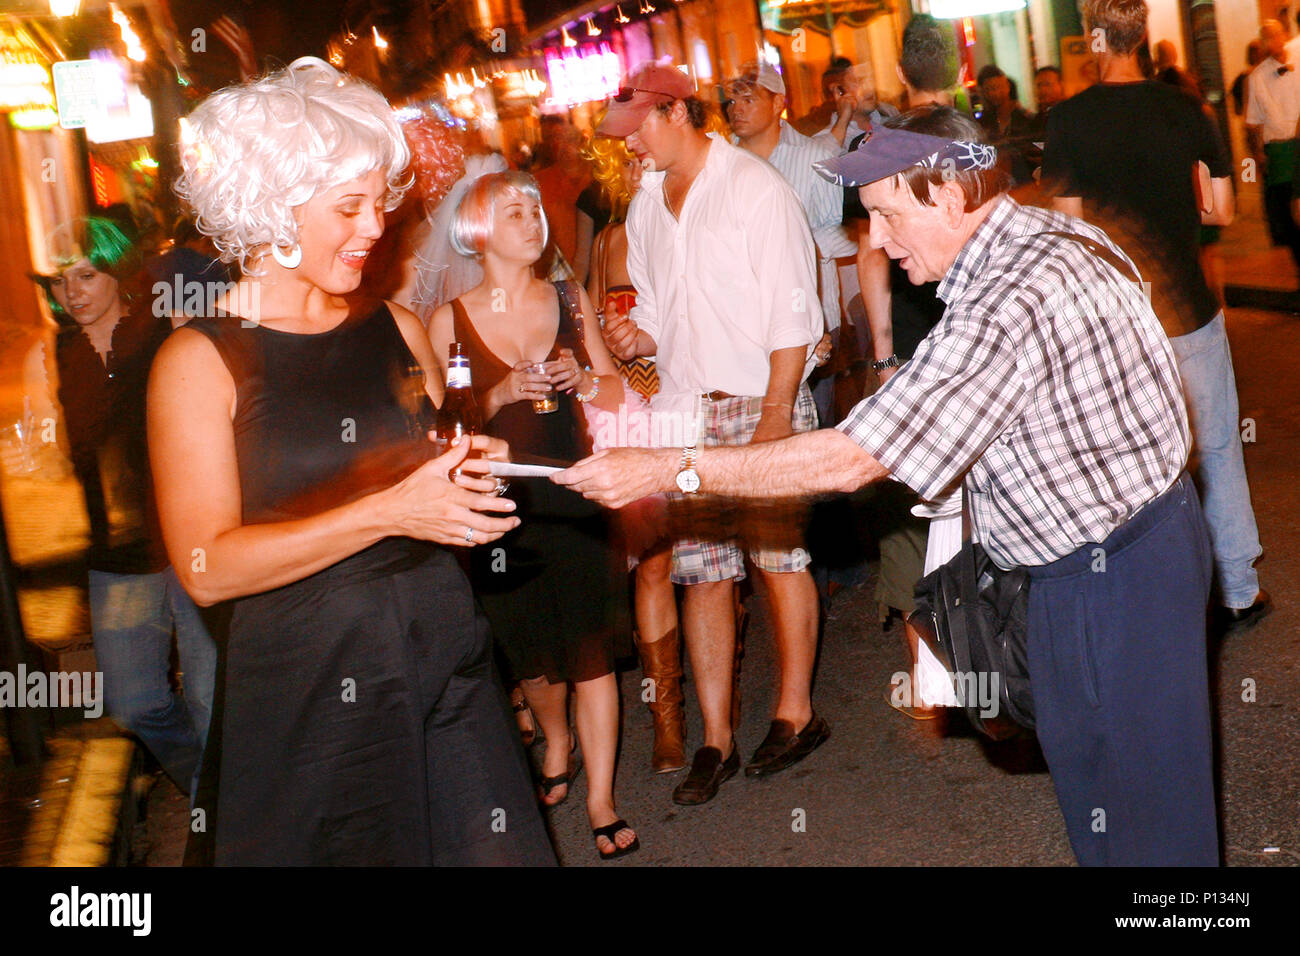 Handing out religious leaflets, Bourbon Street, French Quarter, New Orleans, Louisiana, USA - Stock Image